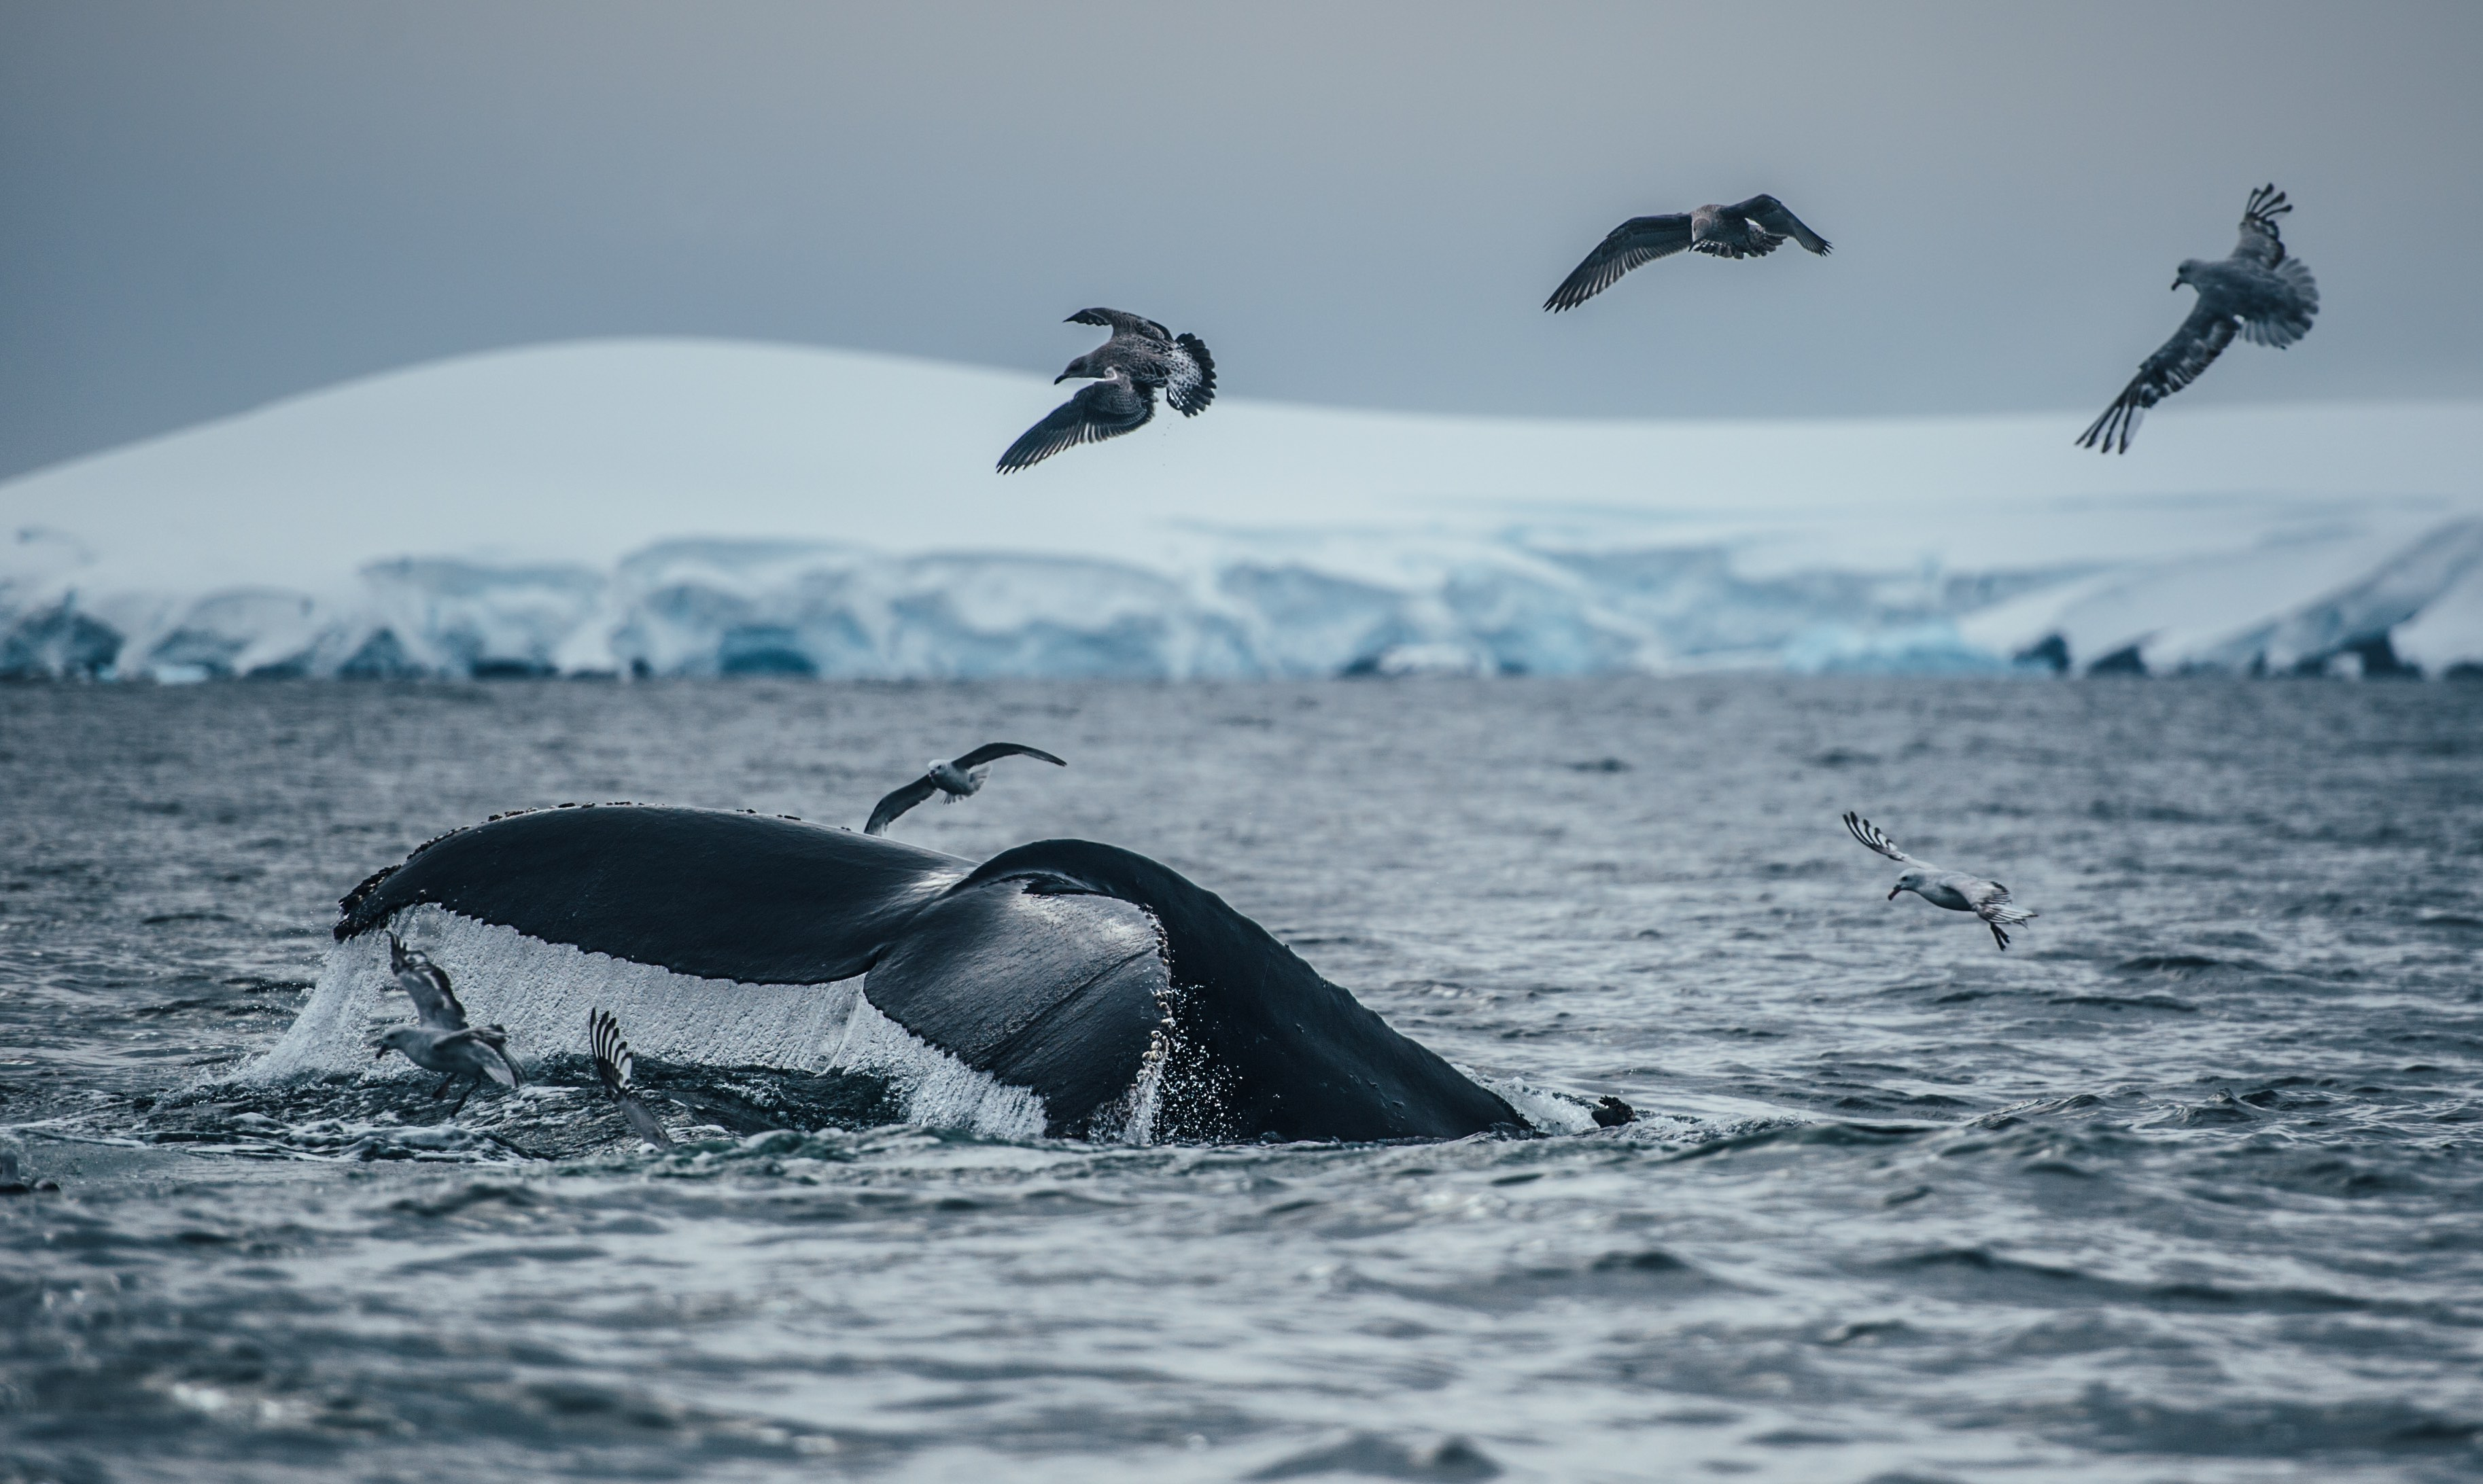 KT_150310_5Swims_AntarcticPeninsula_7014